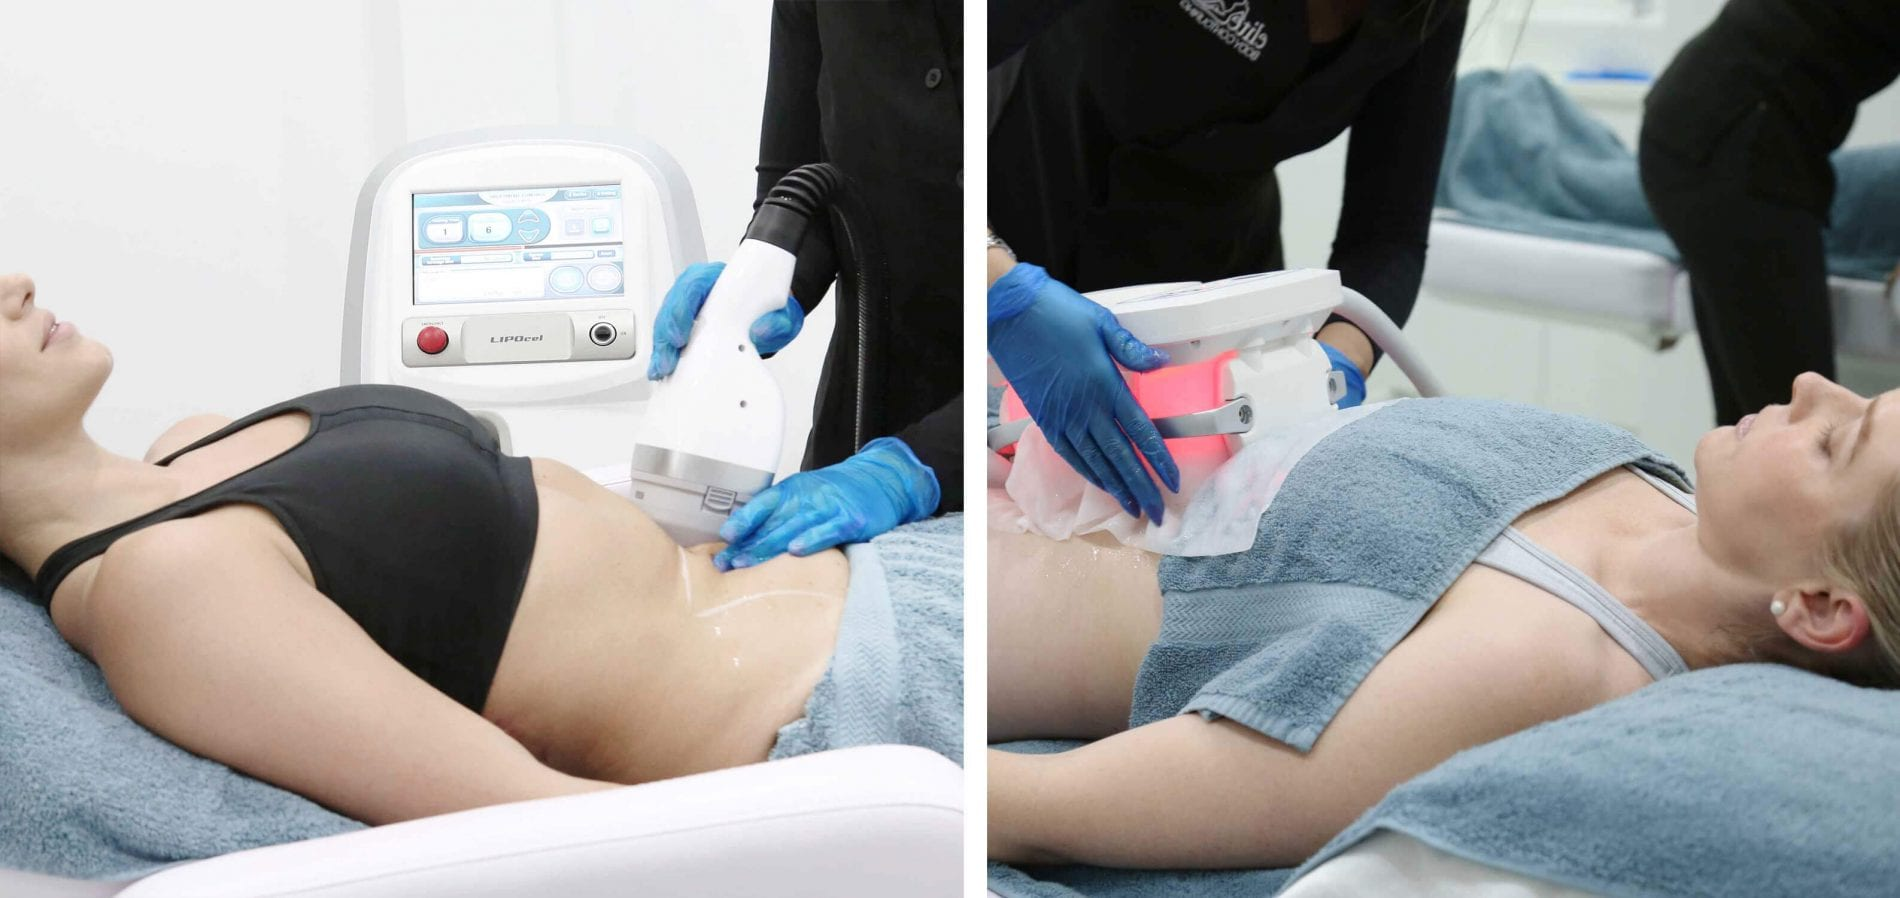 difference between LIPOcel and Cryolipolysis